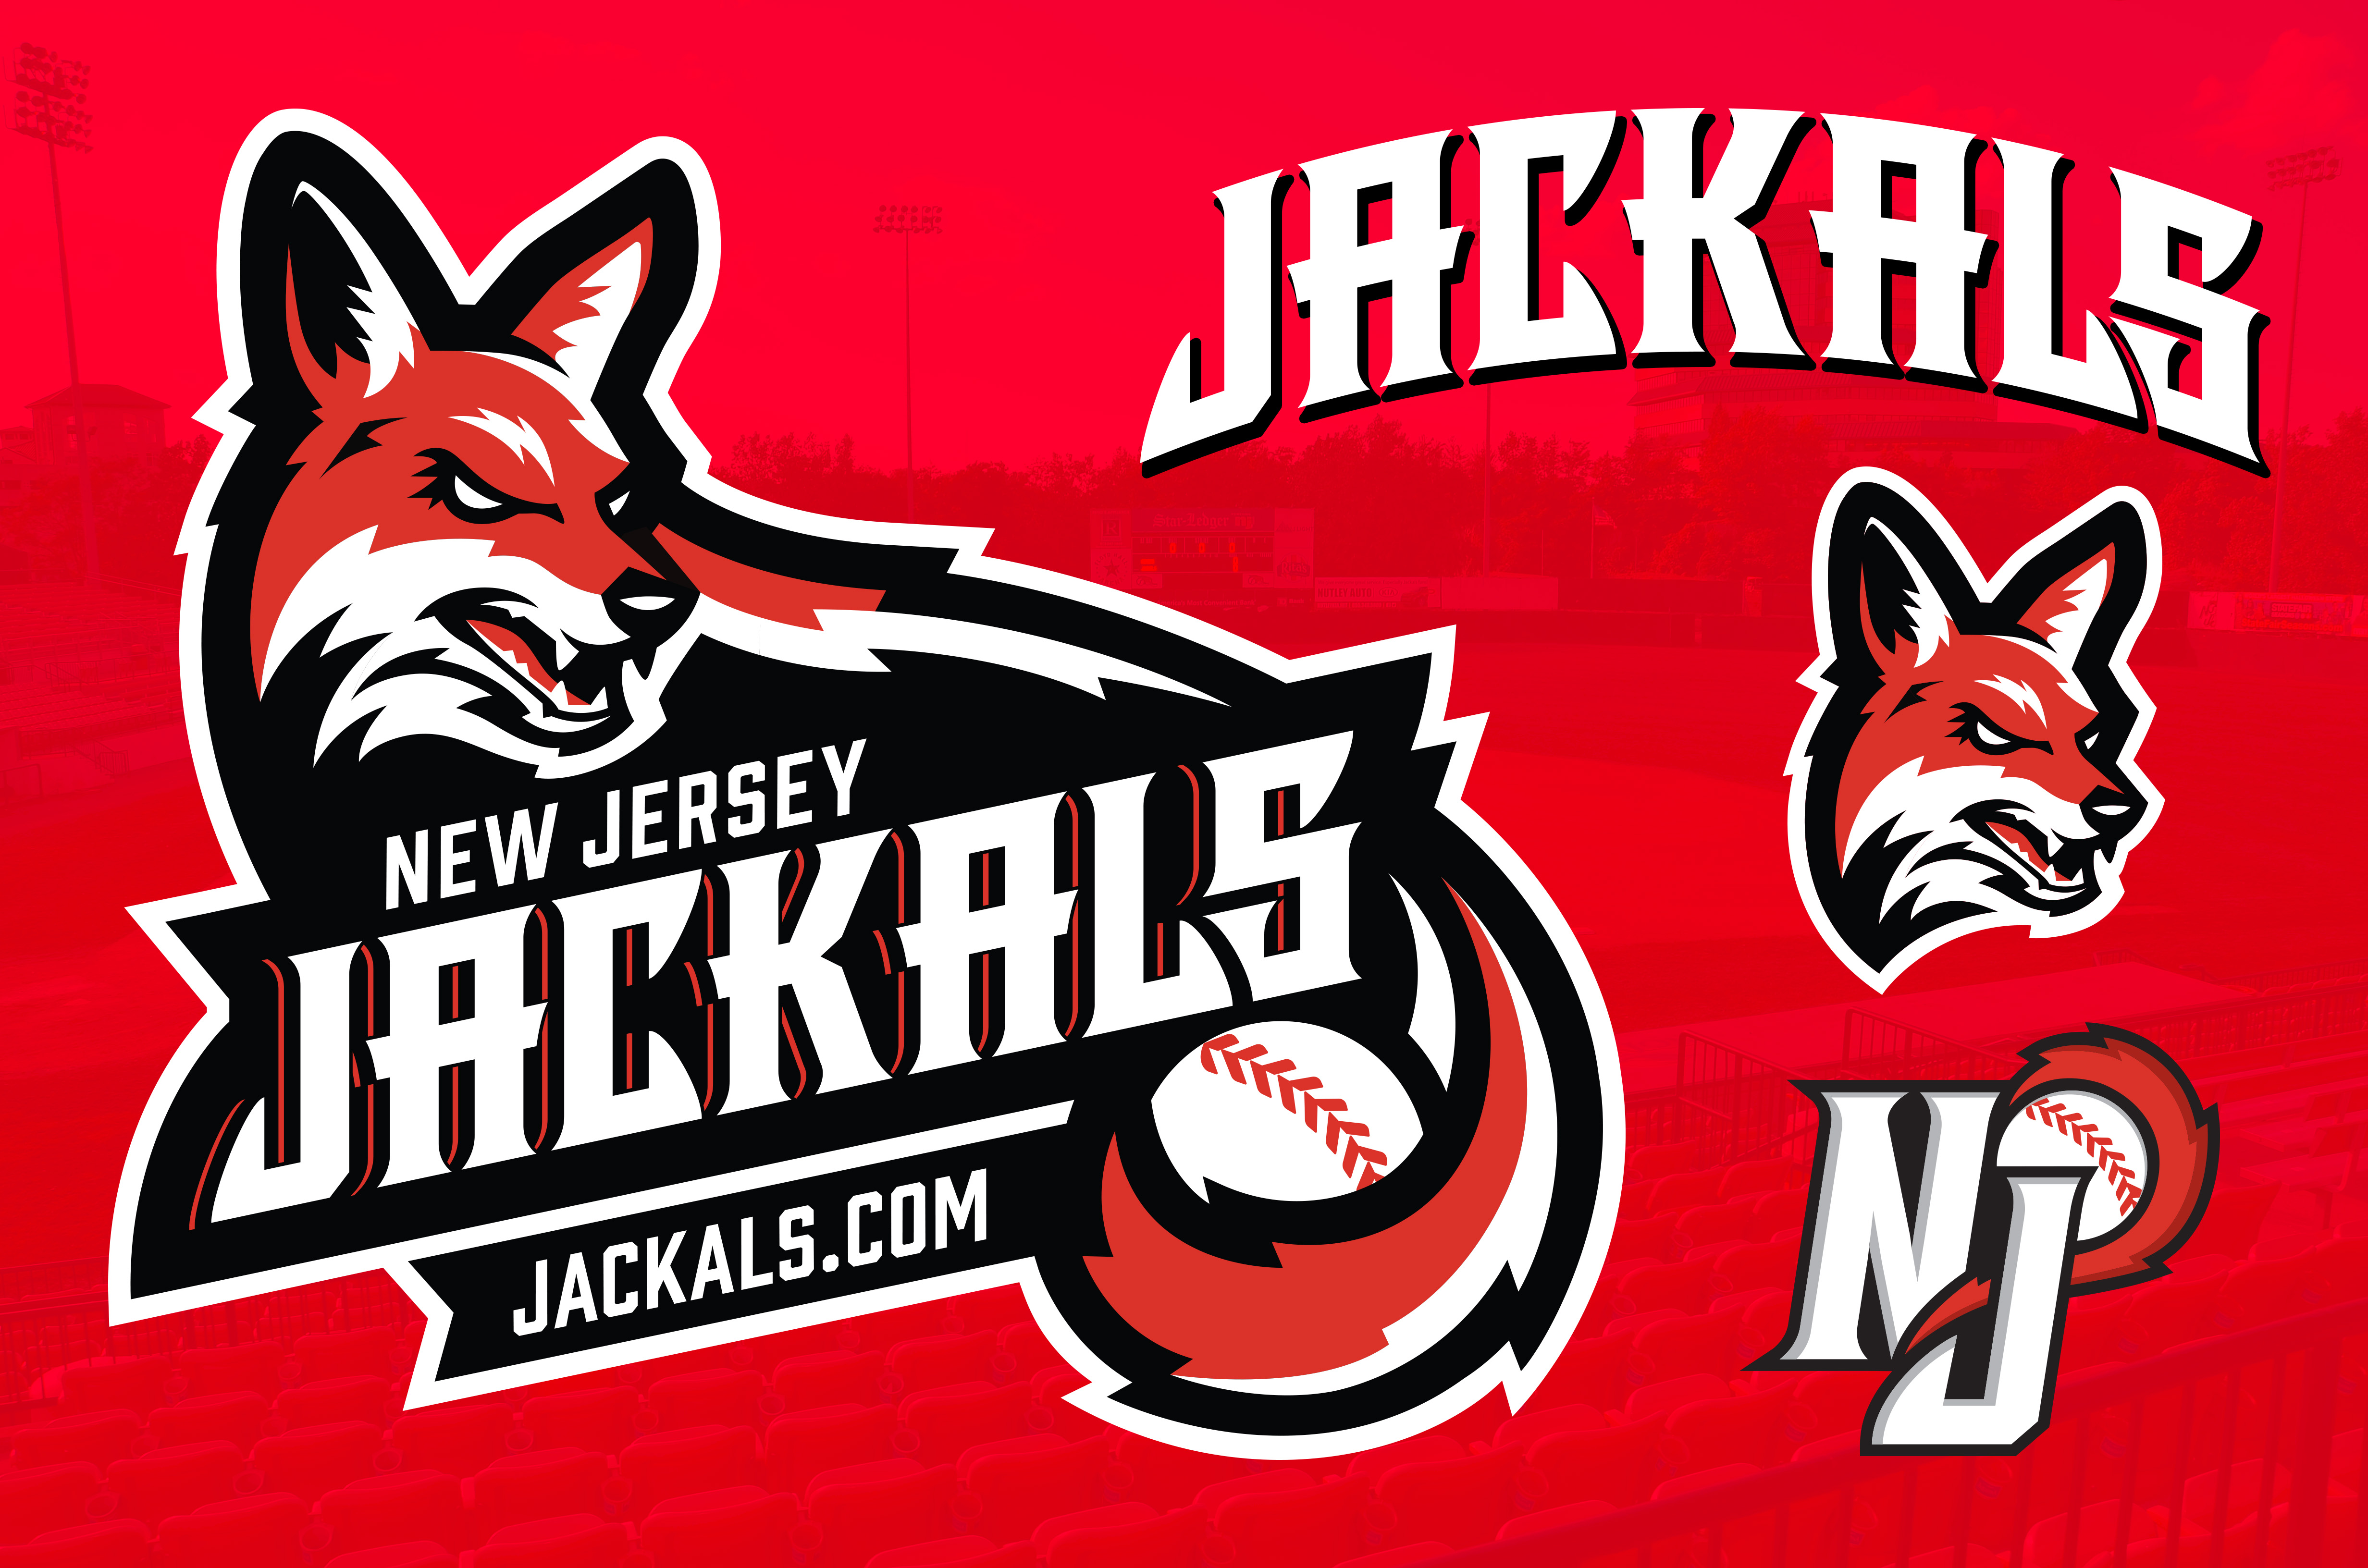 Refreshed New Jersey Jackals' brand identity.…